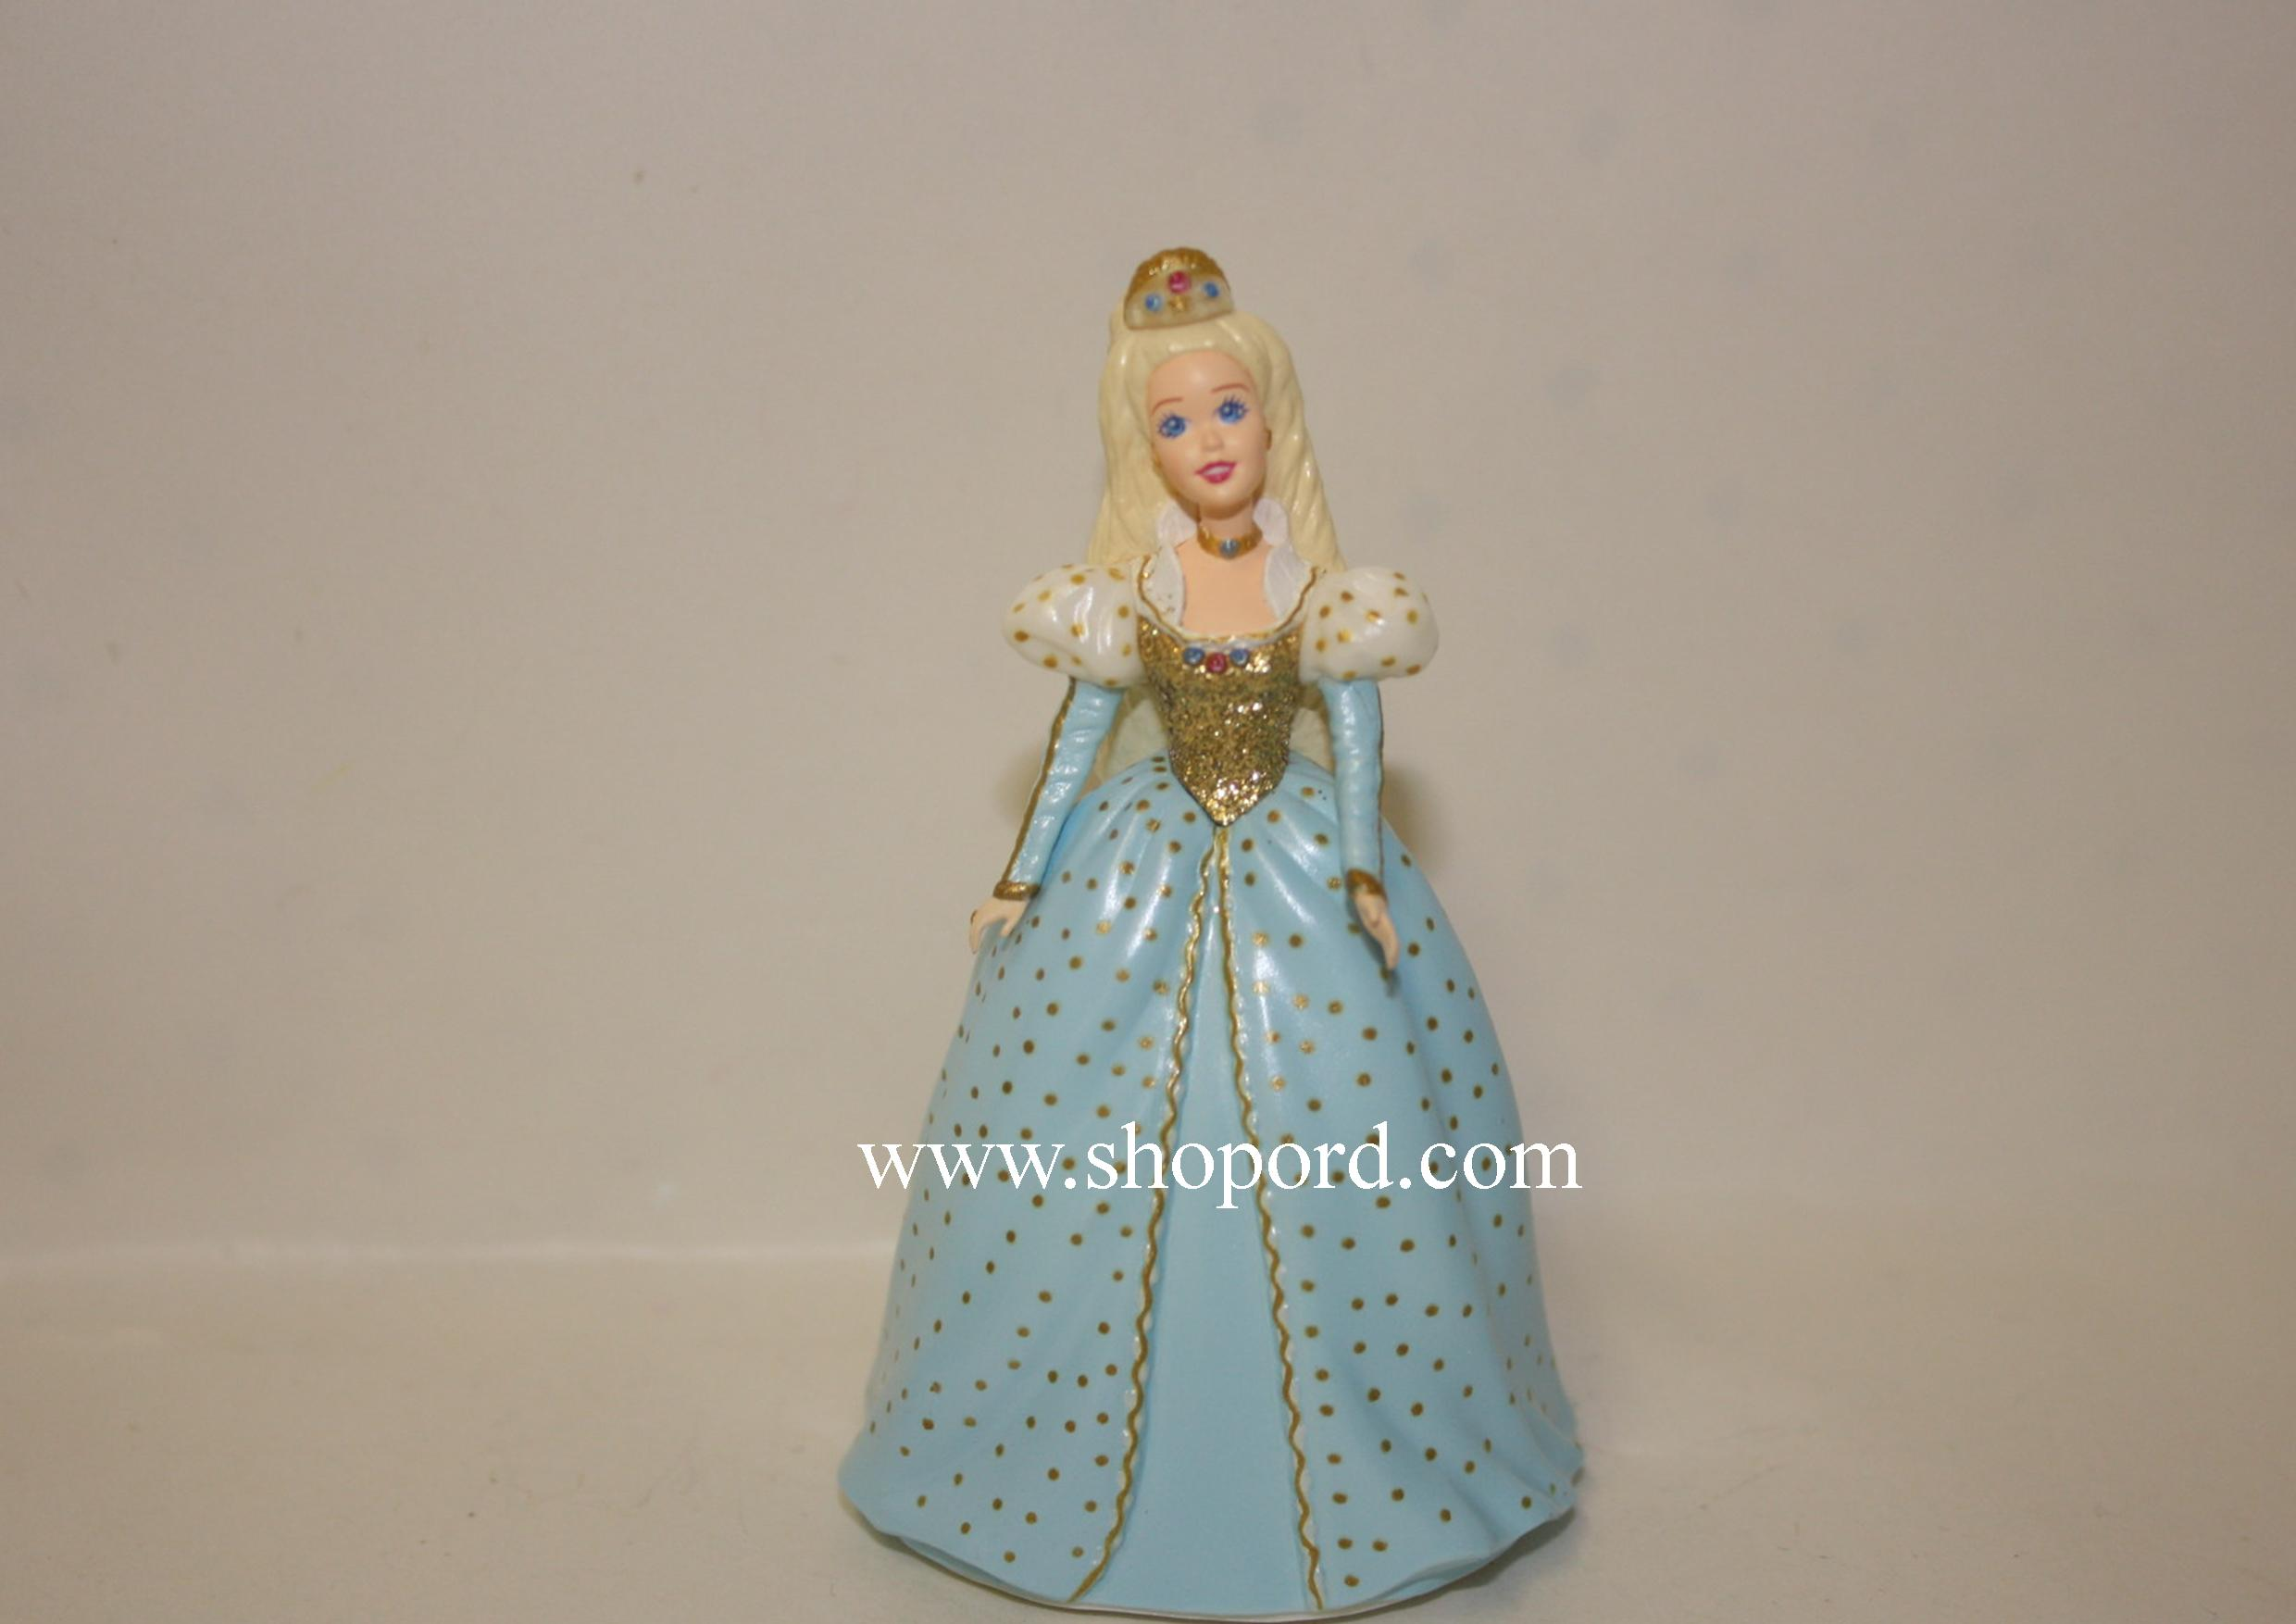 Hallmark 1999 Based On The Barbie As Cinderella Doll Spring Ornament 3rd and Final In The Childrens Collector Series QEO8327 Damaged Box